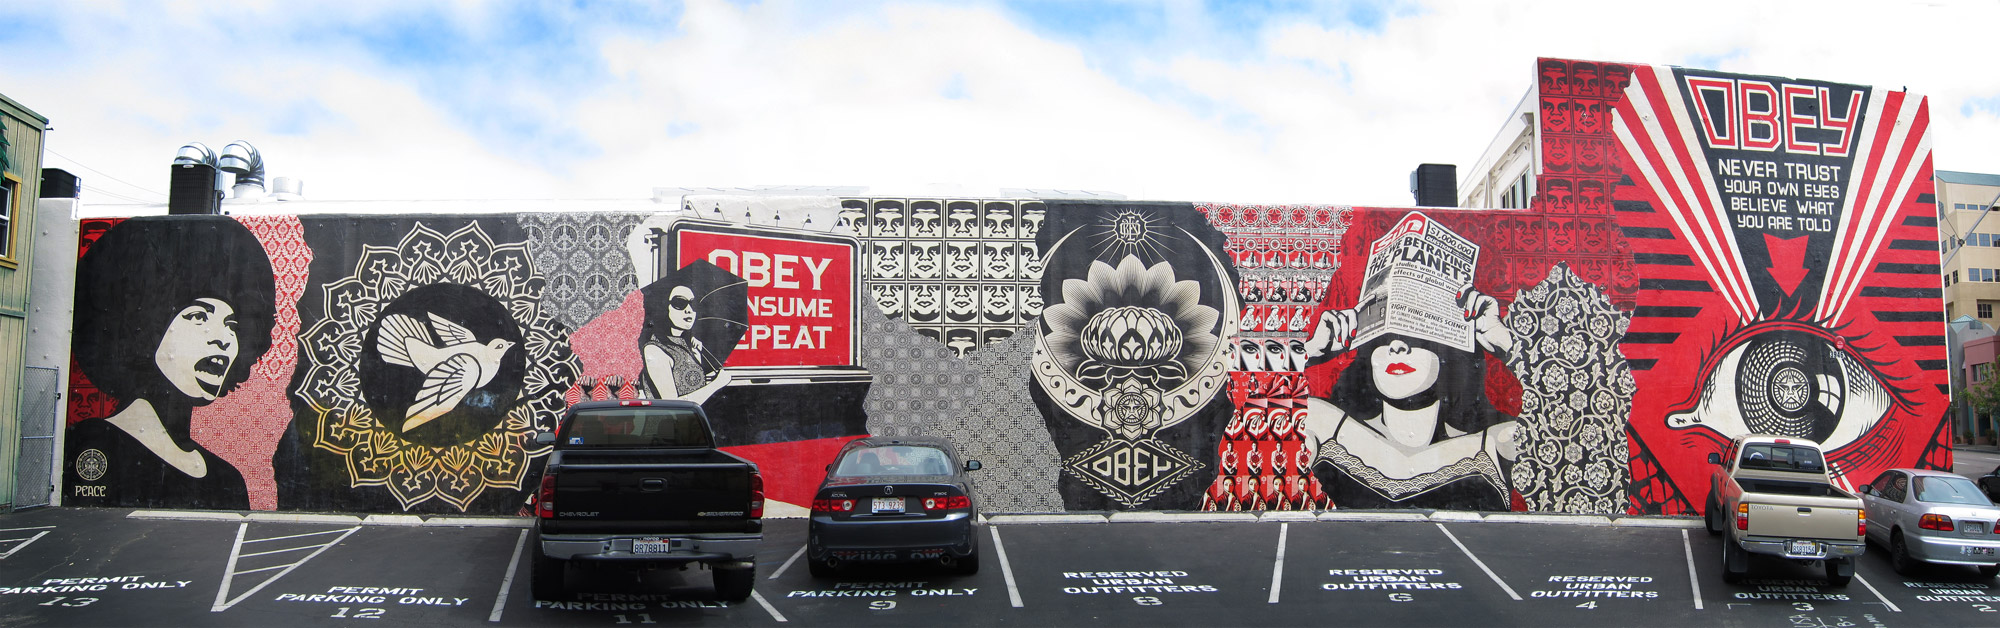 long, parking lot width Shepard Fairey mural in San Diego California featuring Angela Davis, Obey, Global Warming, the All-Seeing-Eye, and other iconic Fairey images